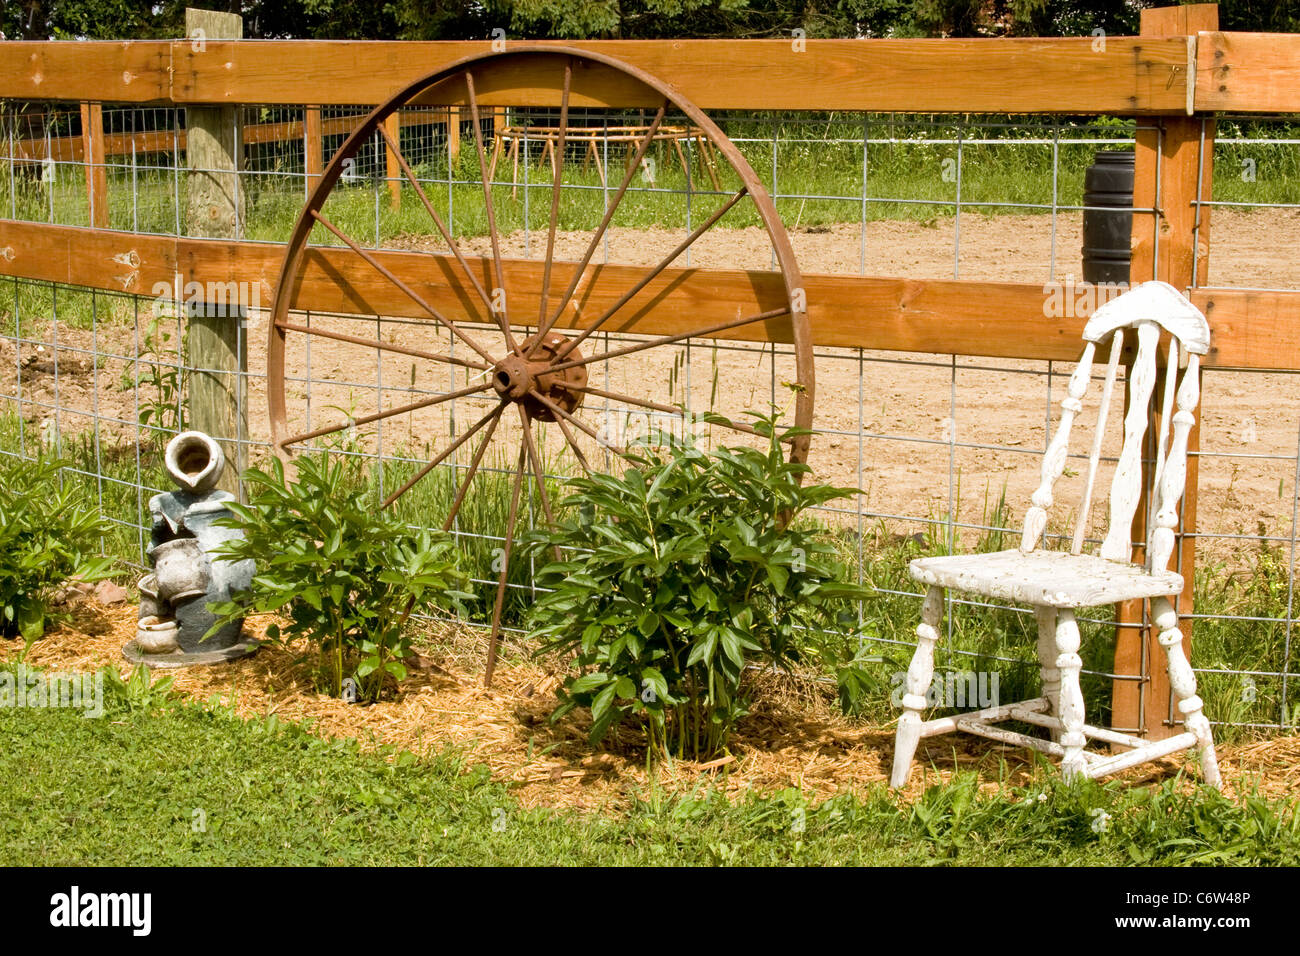 Vintage Steel Wagon Wheel Against A Wooden Fence Stock Photo Alamy